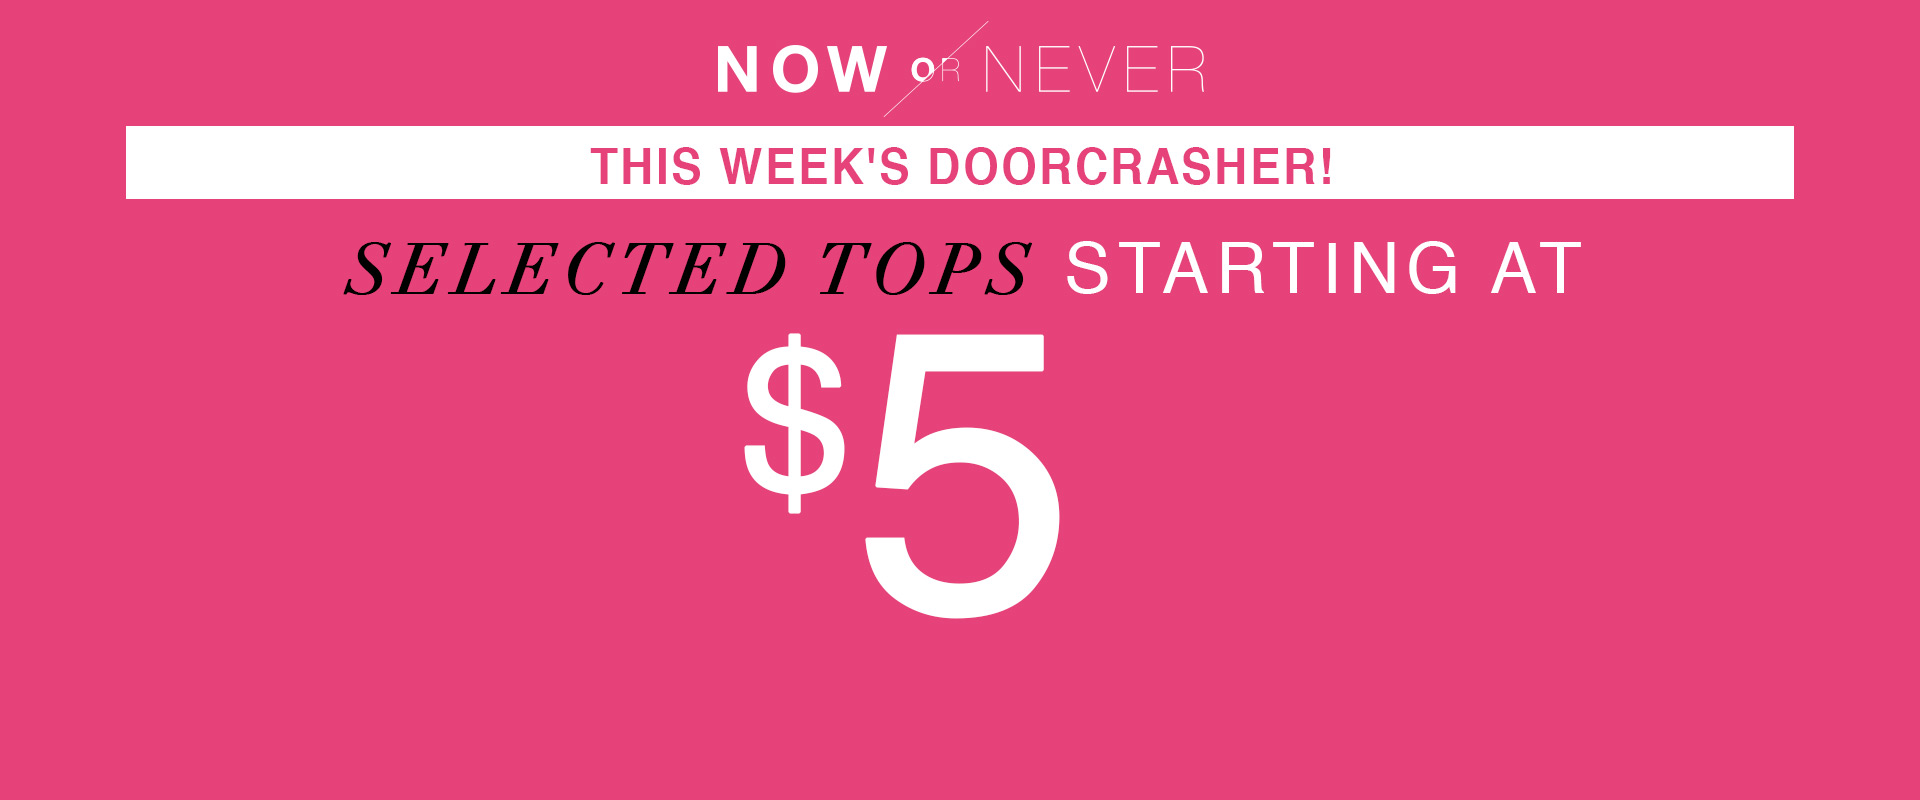 This week's doorcrasher! Selected tops starting at $5.